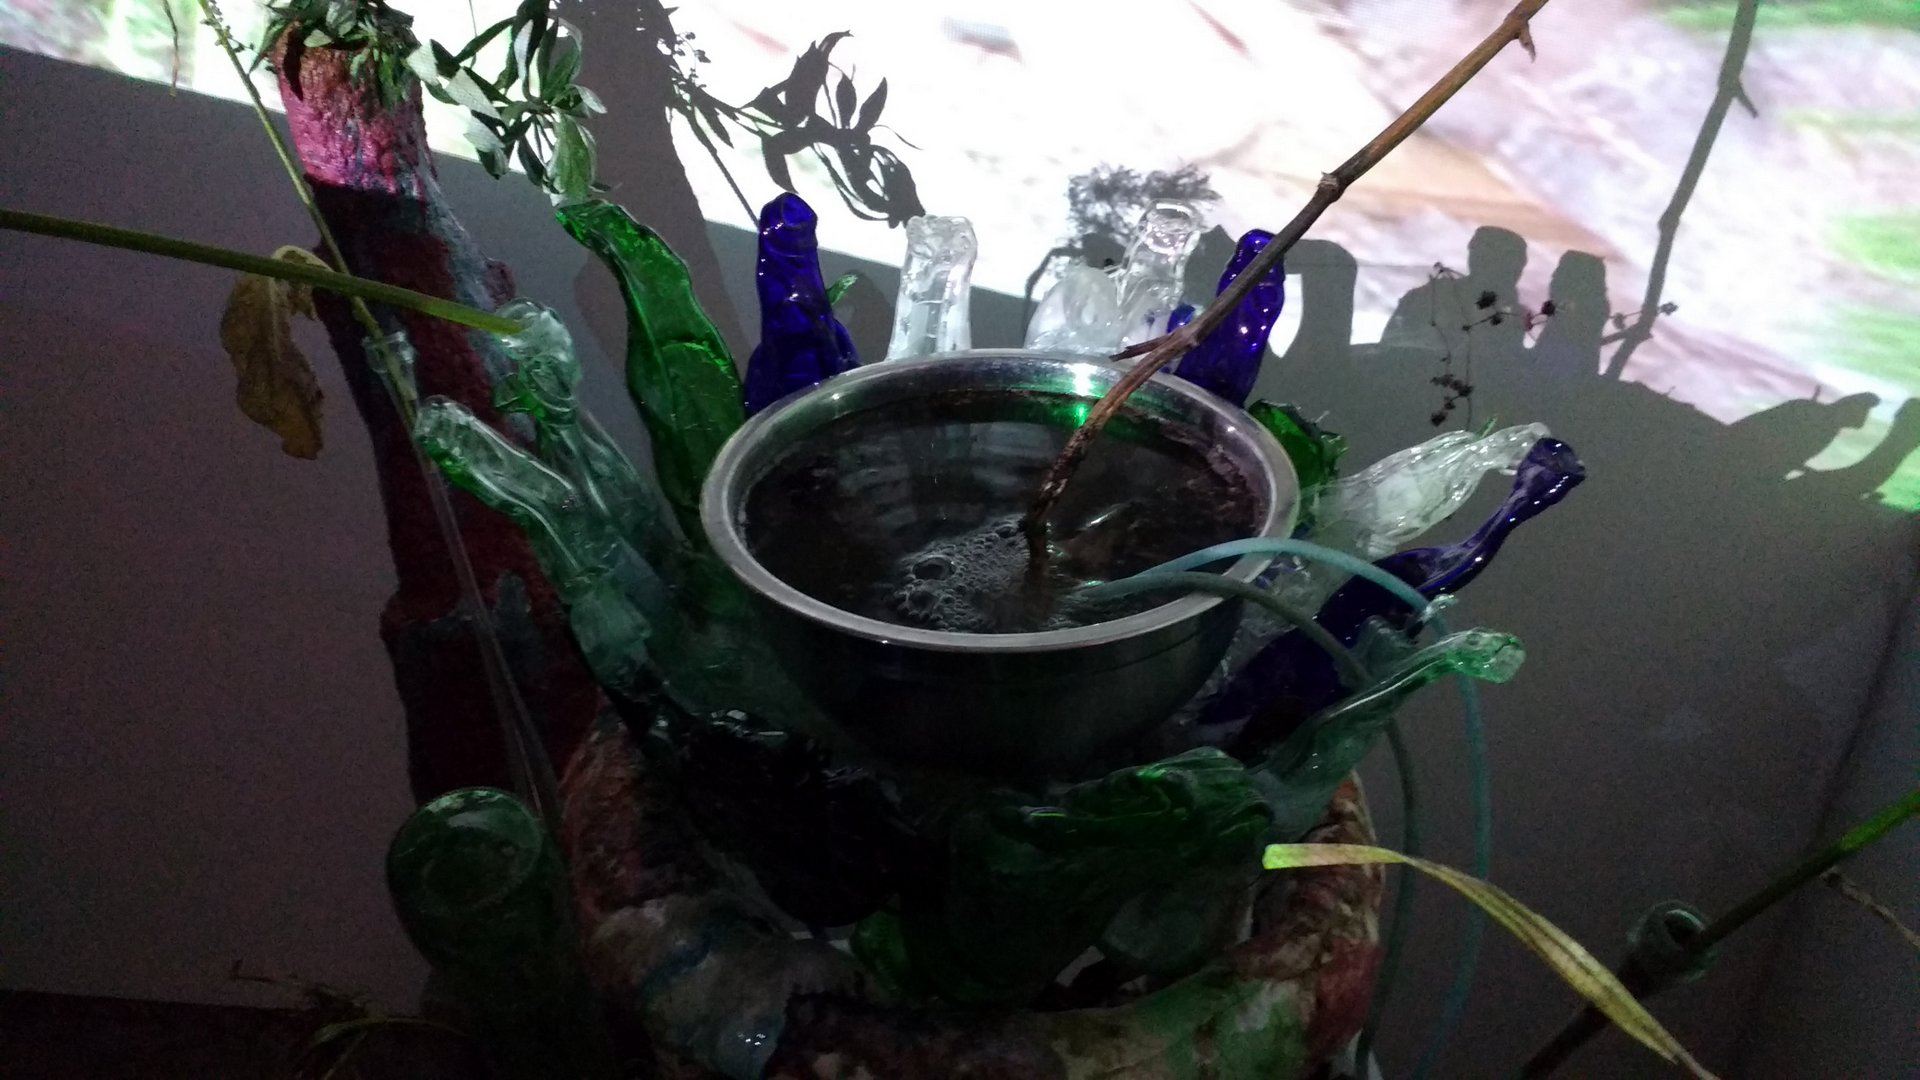 a bowl with bubbling liquid surrounded by slumped glass bottles